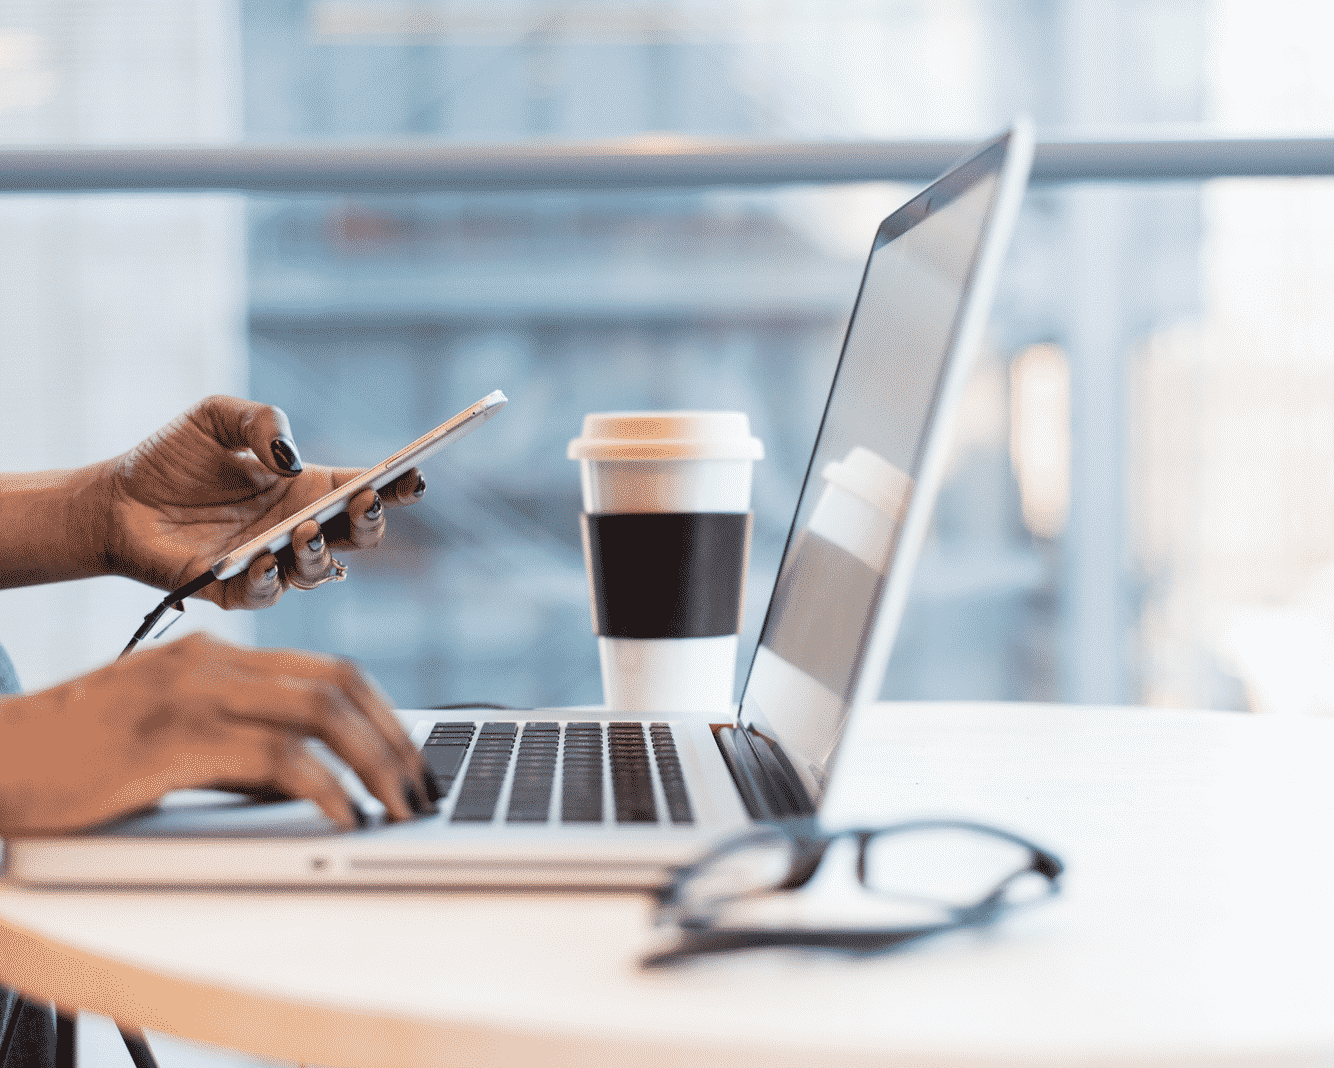 Hands holding phone and typing on computer with coffee cup and glasses on table